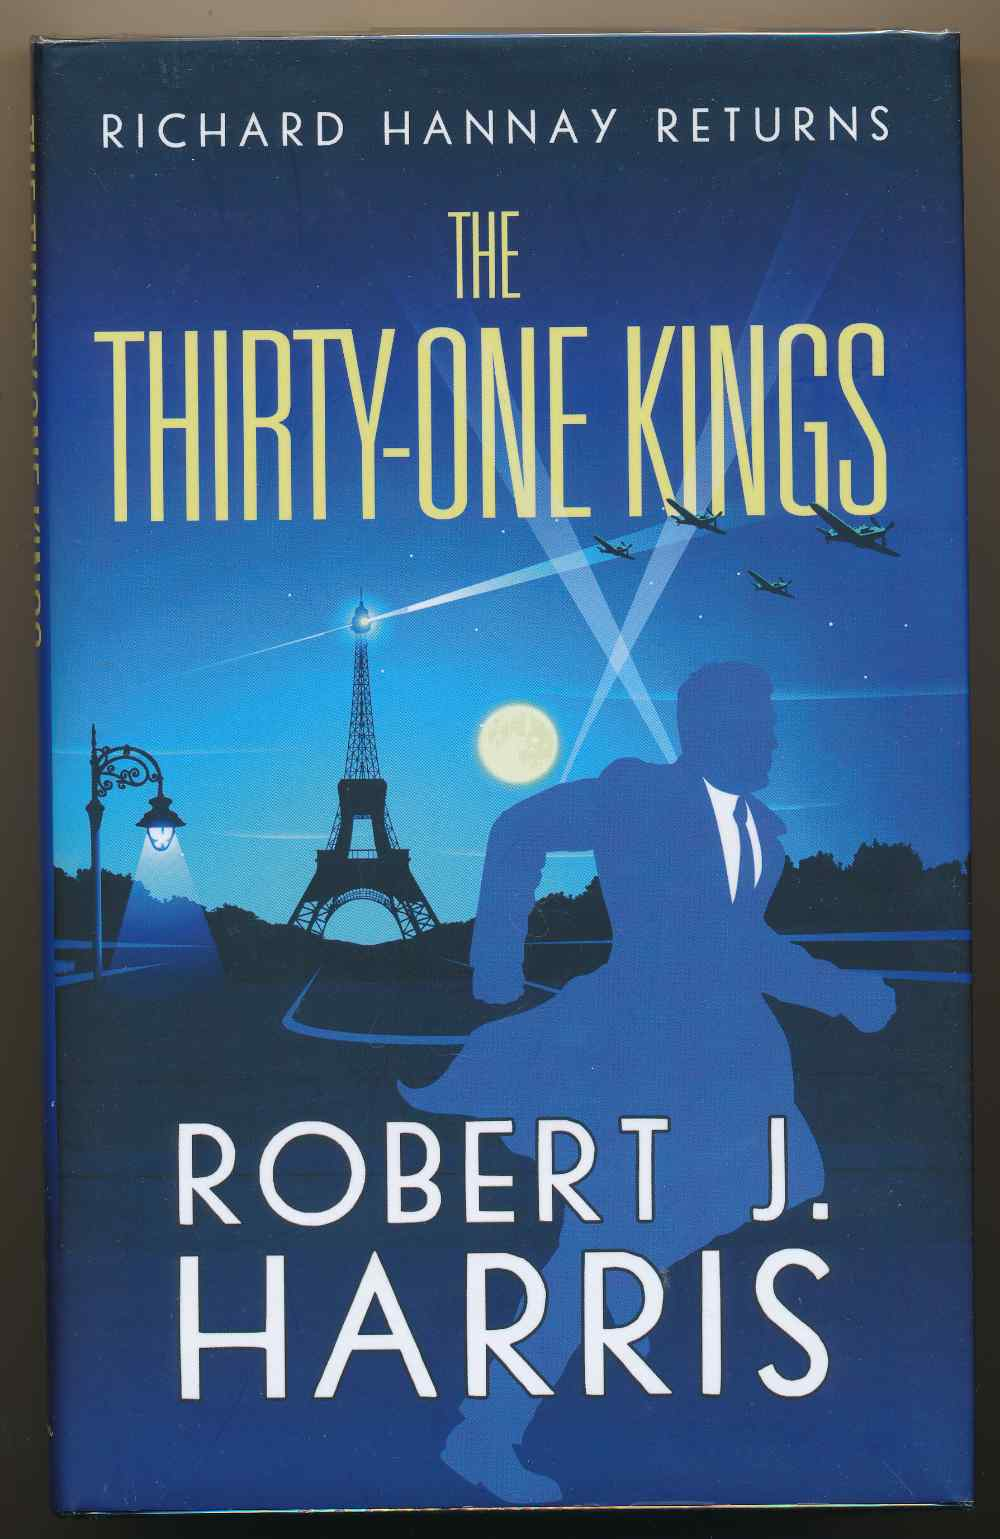 The thirty-one kings : Richard Hannay returns